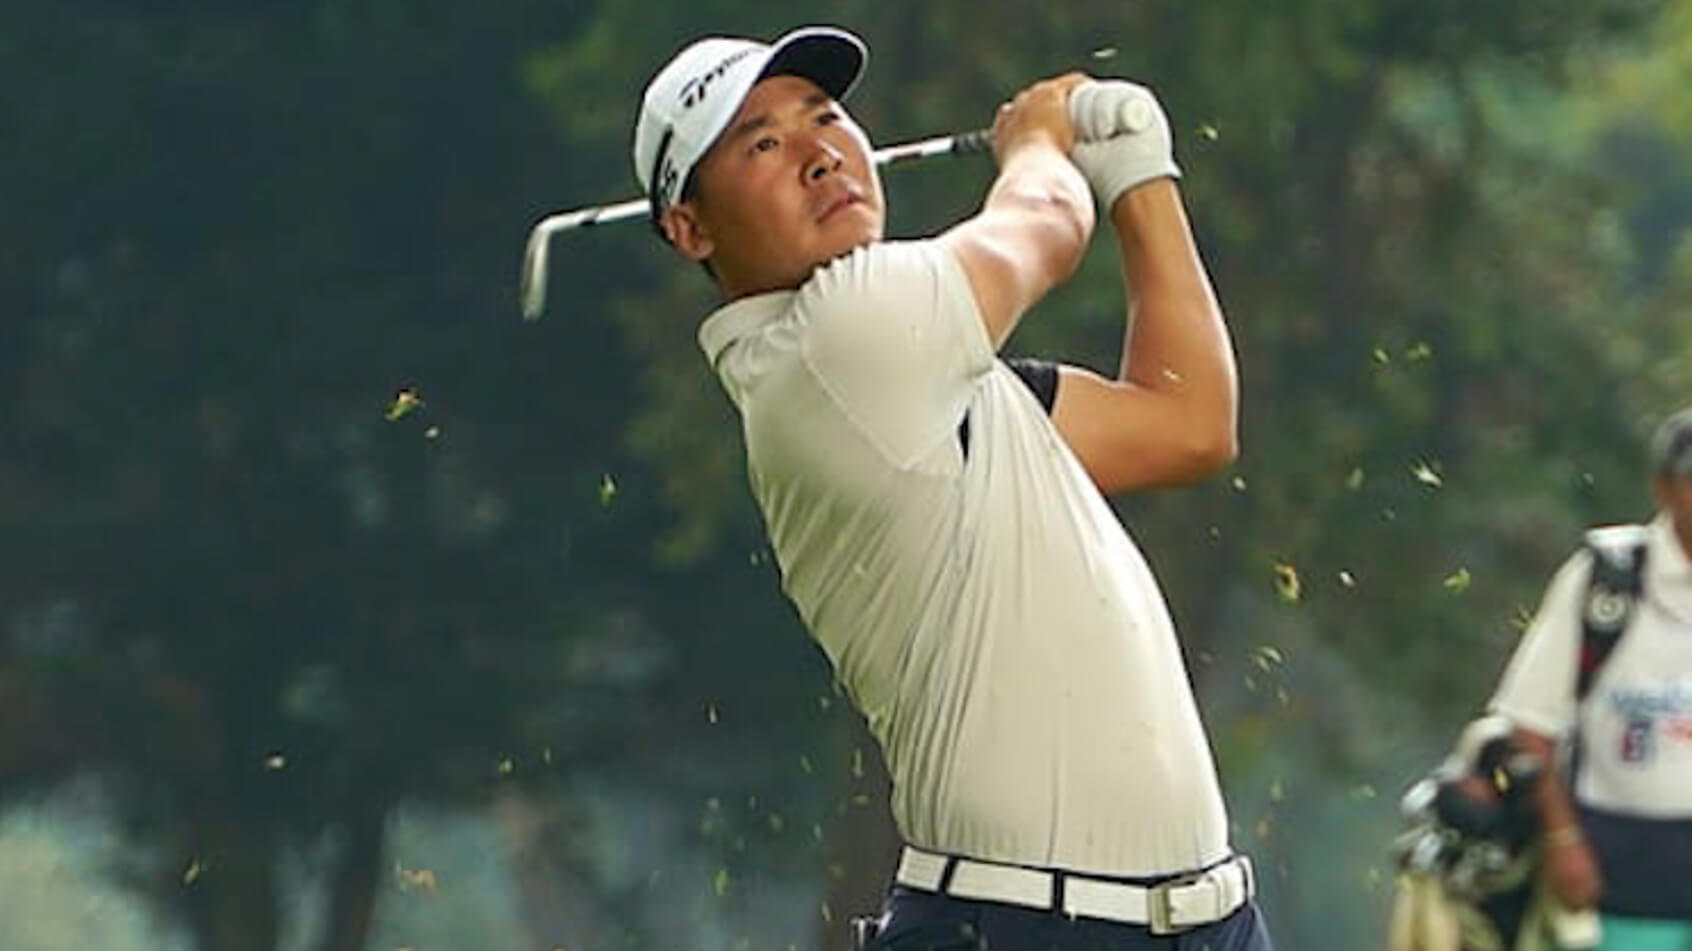 China native Xinjun Zhang has played professional golf since 2010 as a member of the PGA TOUR China, Korn Ferry Tour, and PGA TOUR. He made his debut on the PGA TOUR in 2018 and has since earned four Top 10 finishes in just over 80 events played. Before coming to the U.S. to play golf, XJ was one of the most decorated players in Chinese history winning the 2014 Beijing Open and the 2015 Chongqing Open.